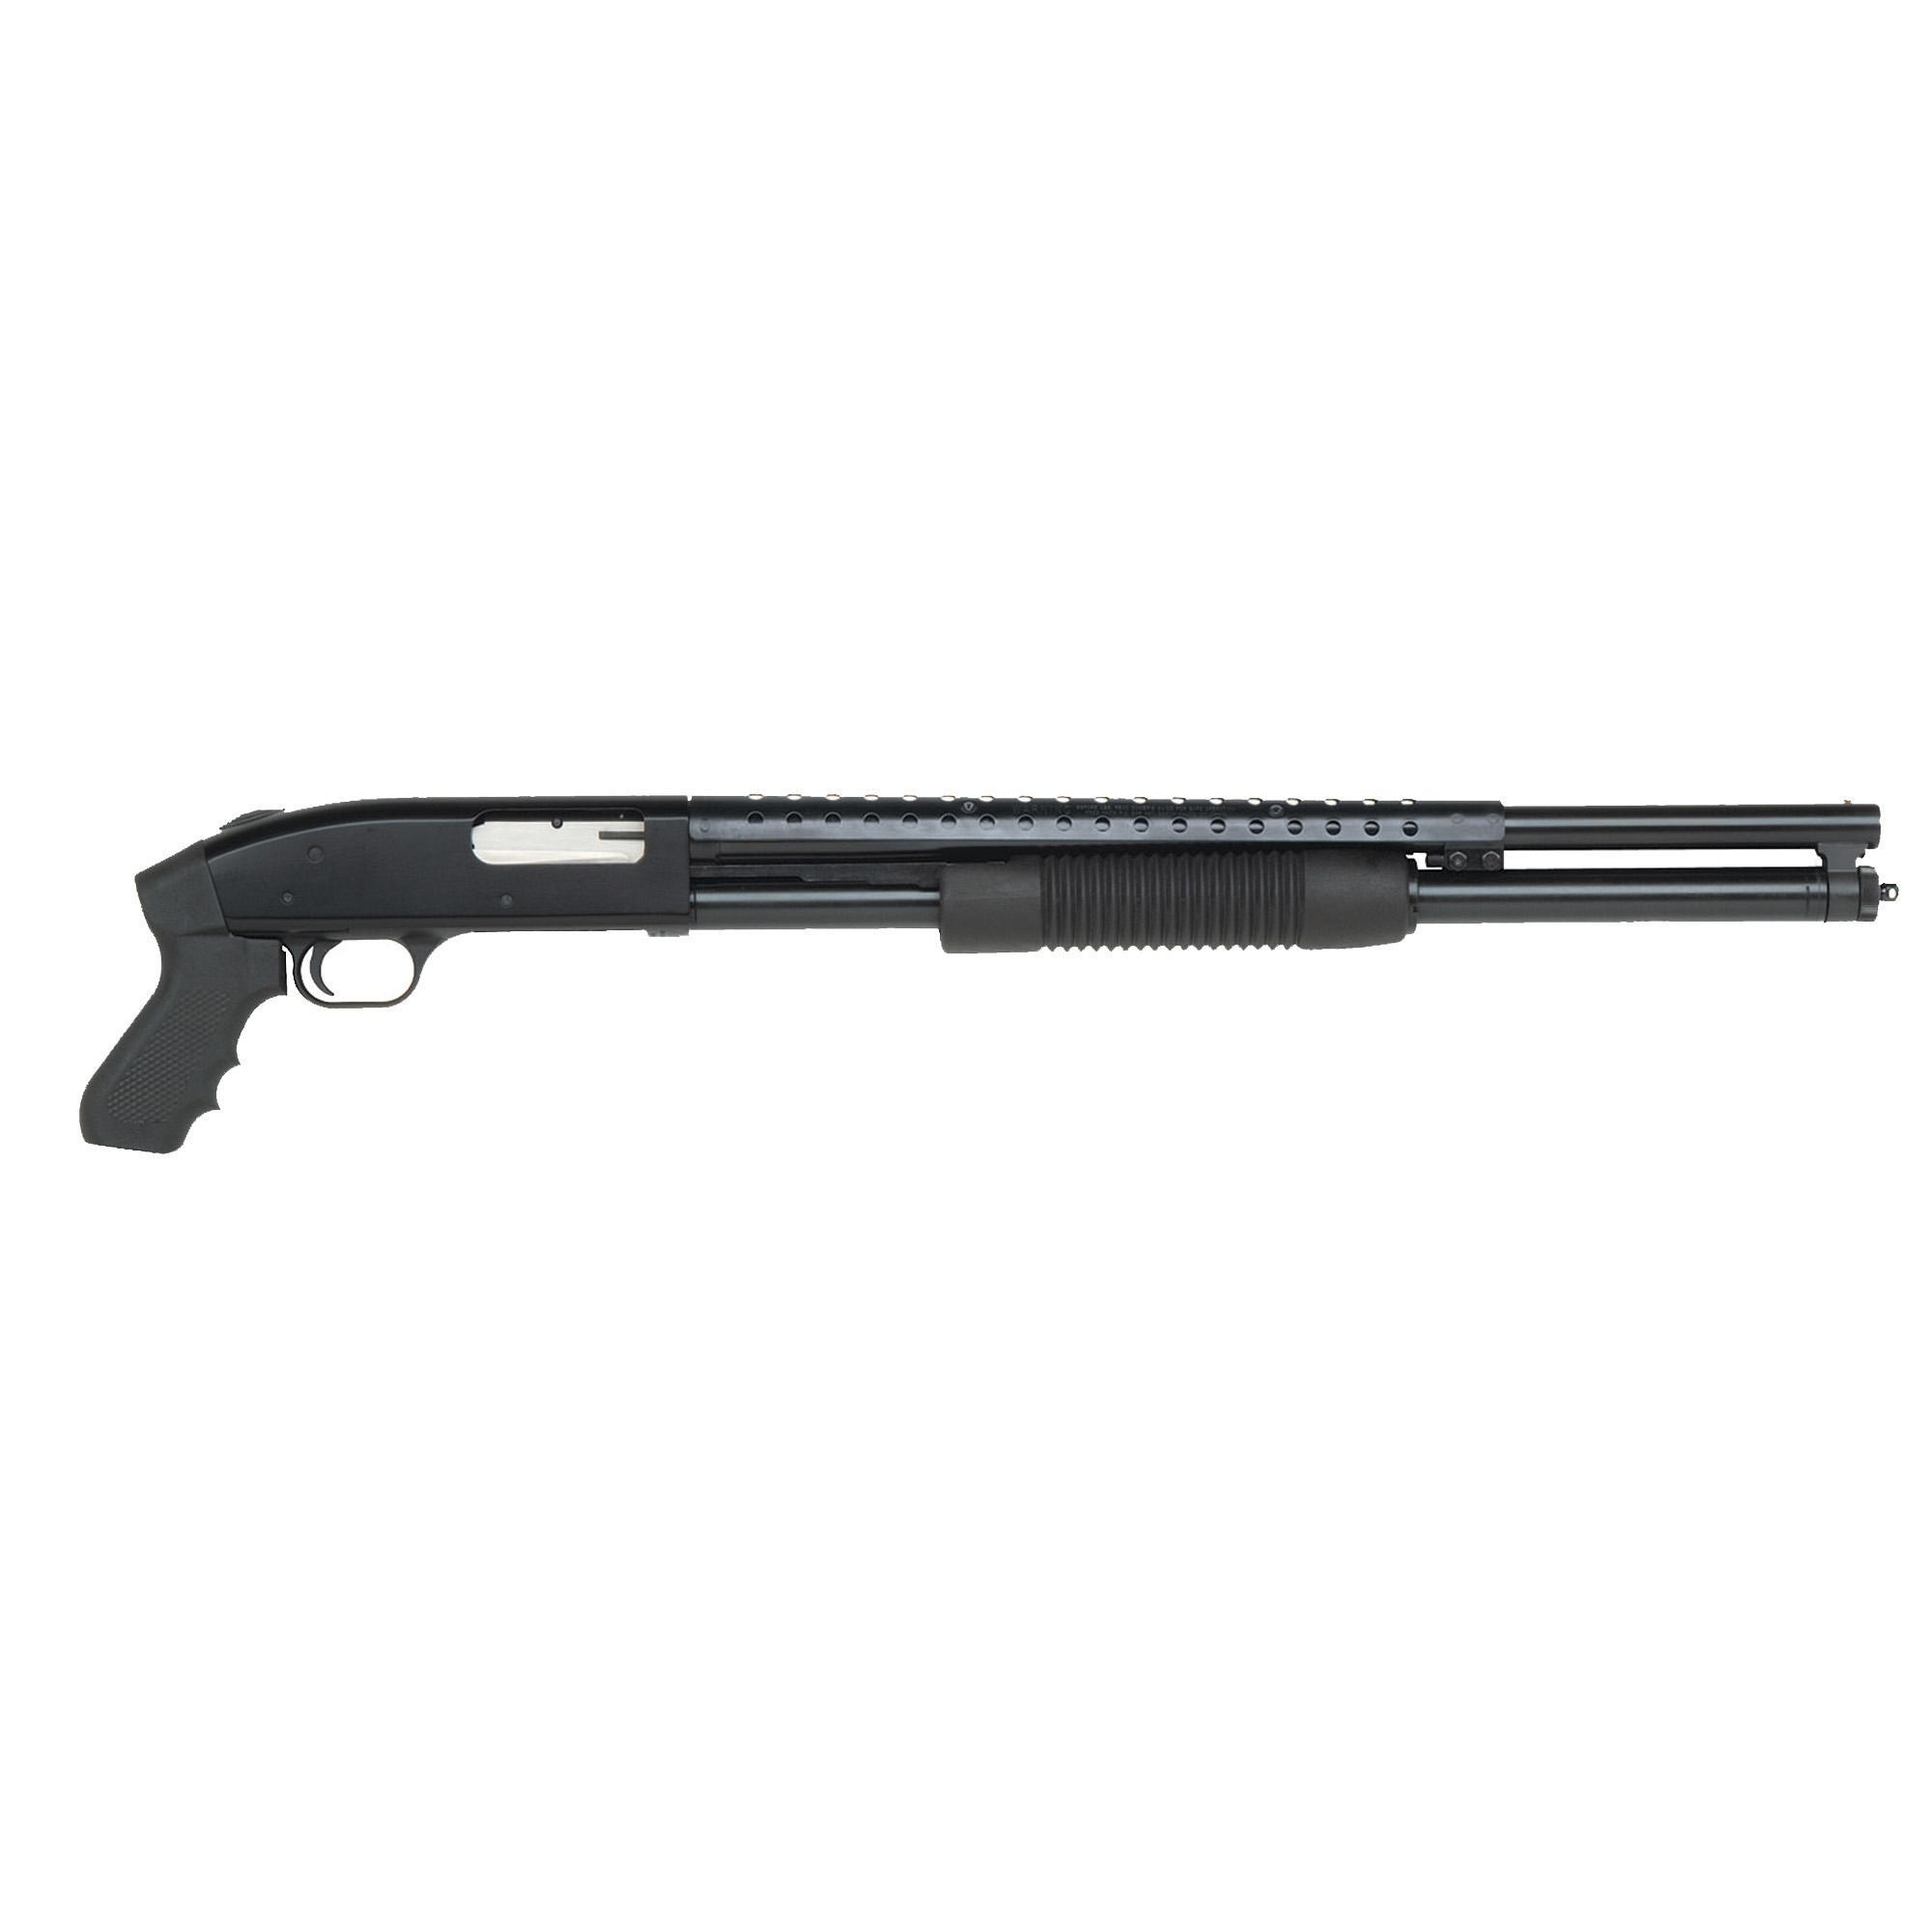 Mossberg 500 Tactical-img-7